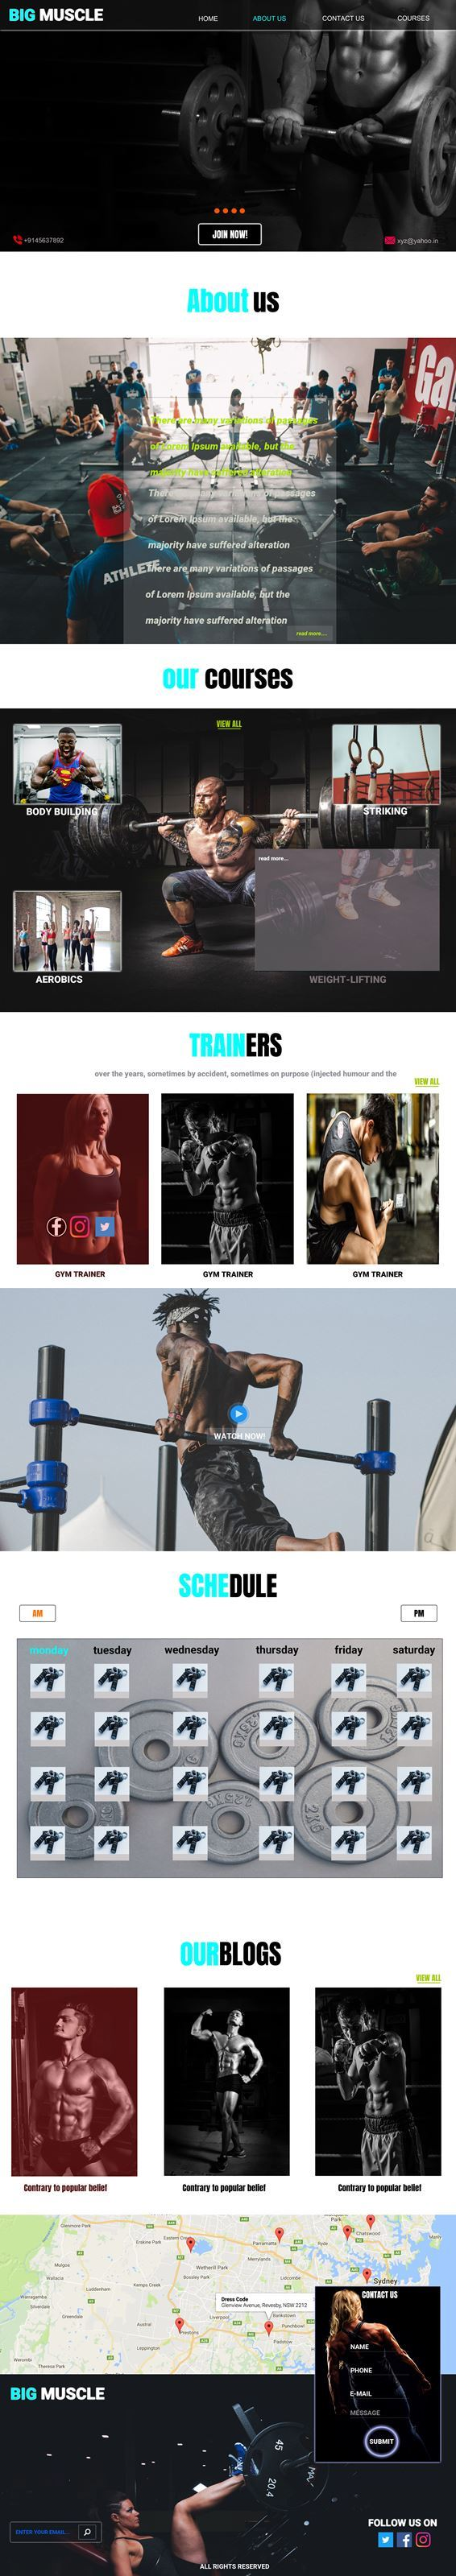 Big Muscle HTML5 Template PSD Image